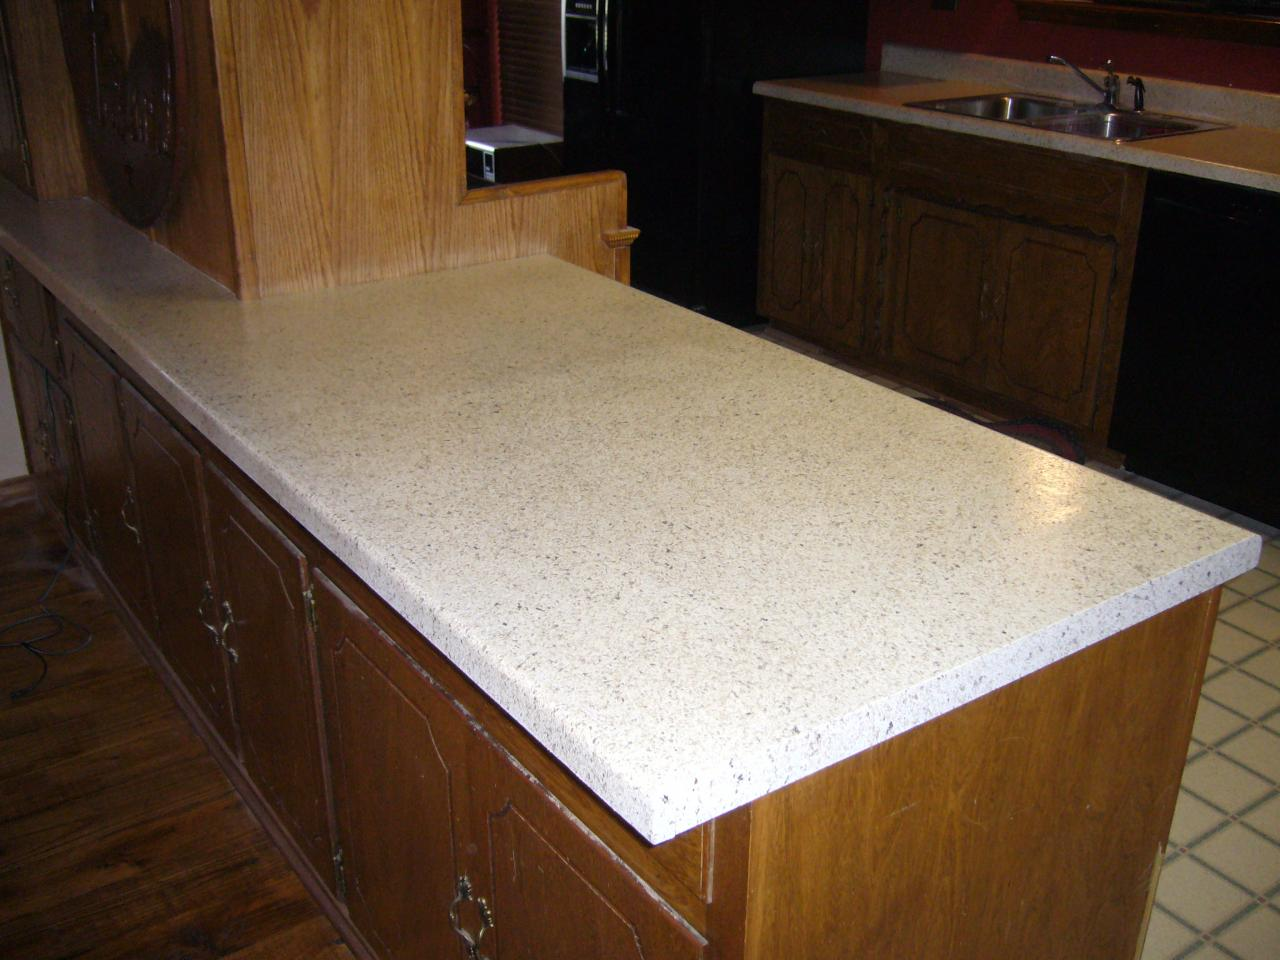 Countertop Hole Plug Ace Resurfacing Restoration And Repairs